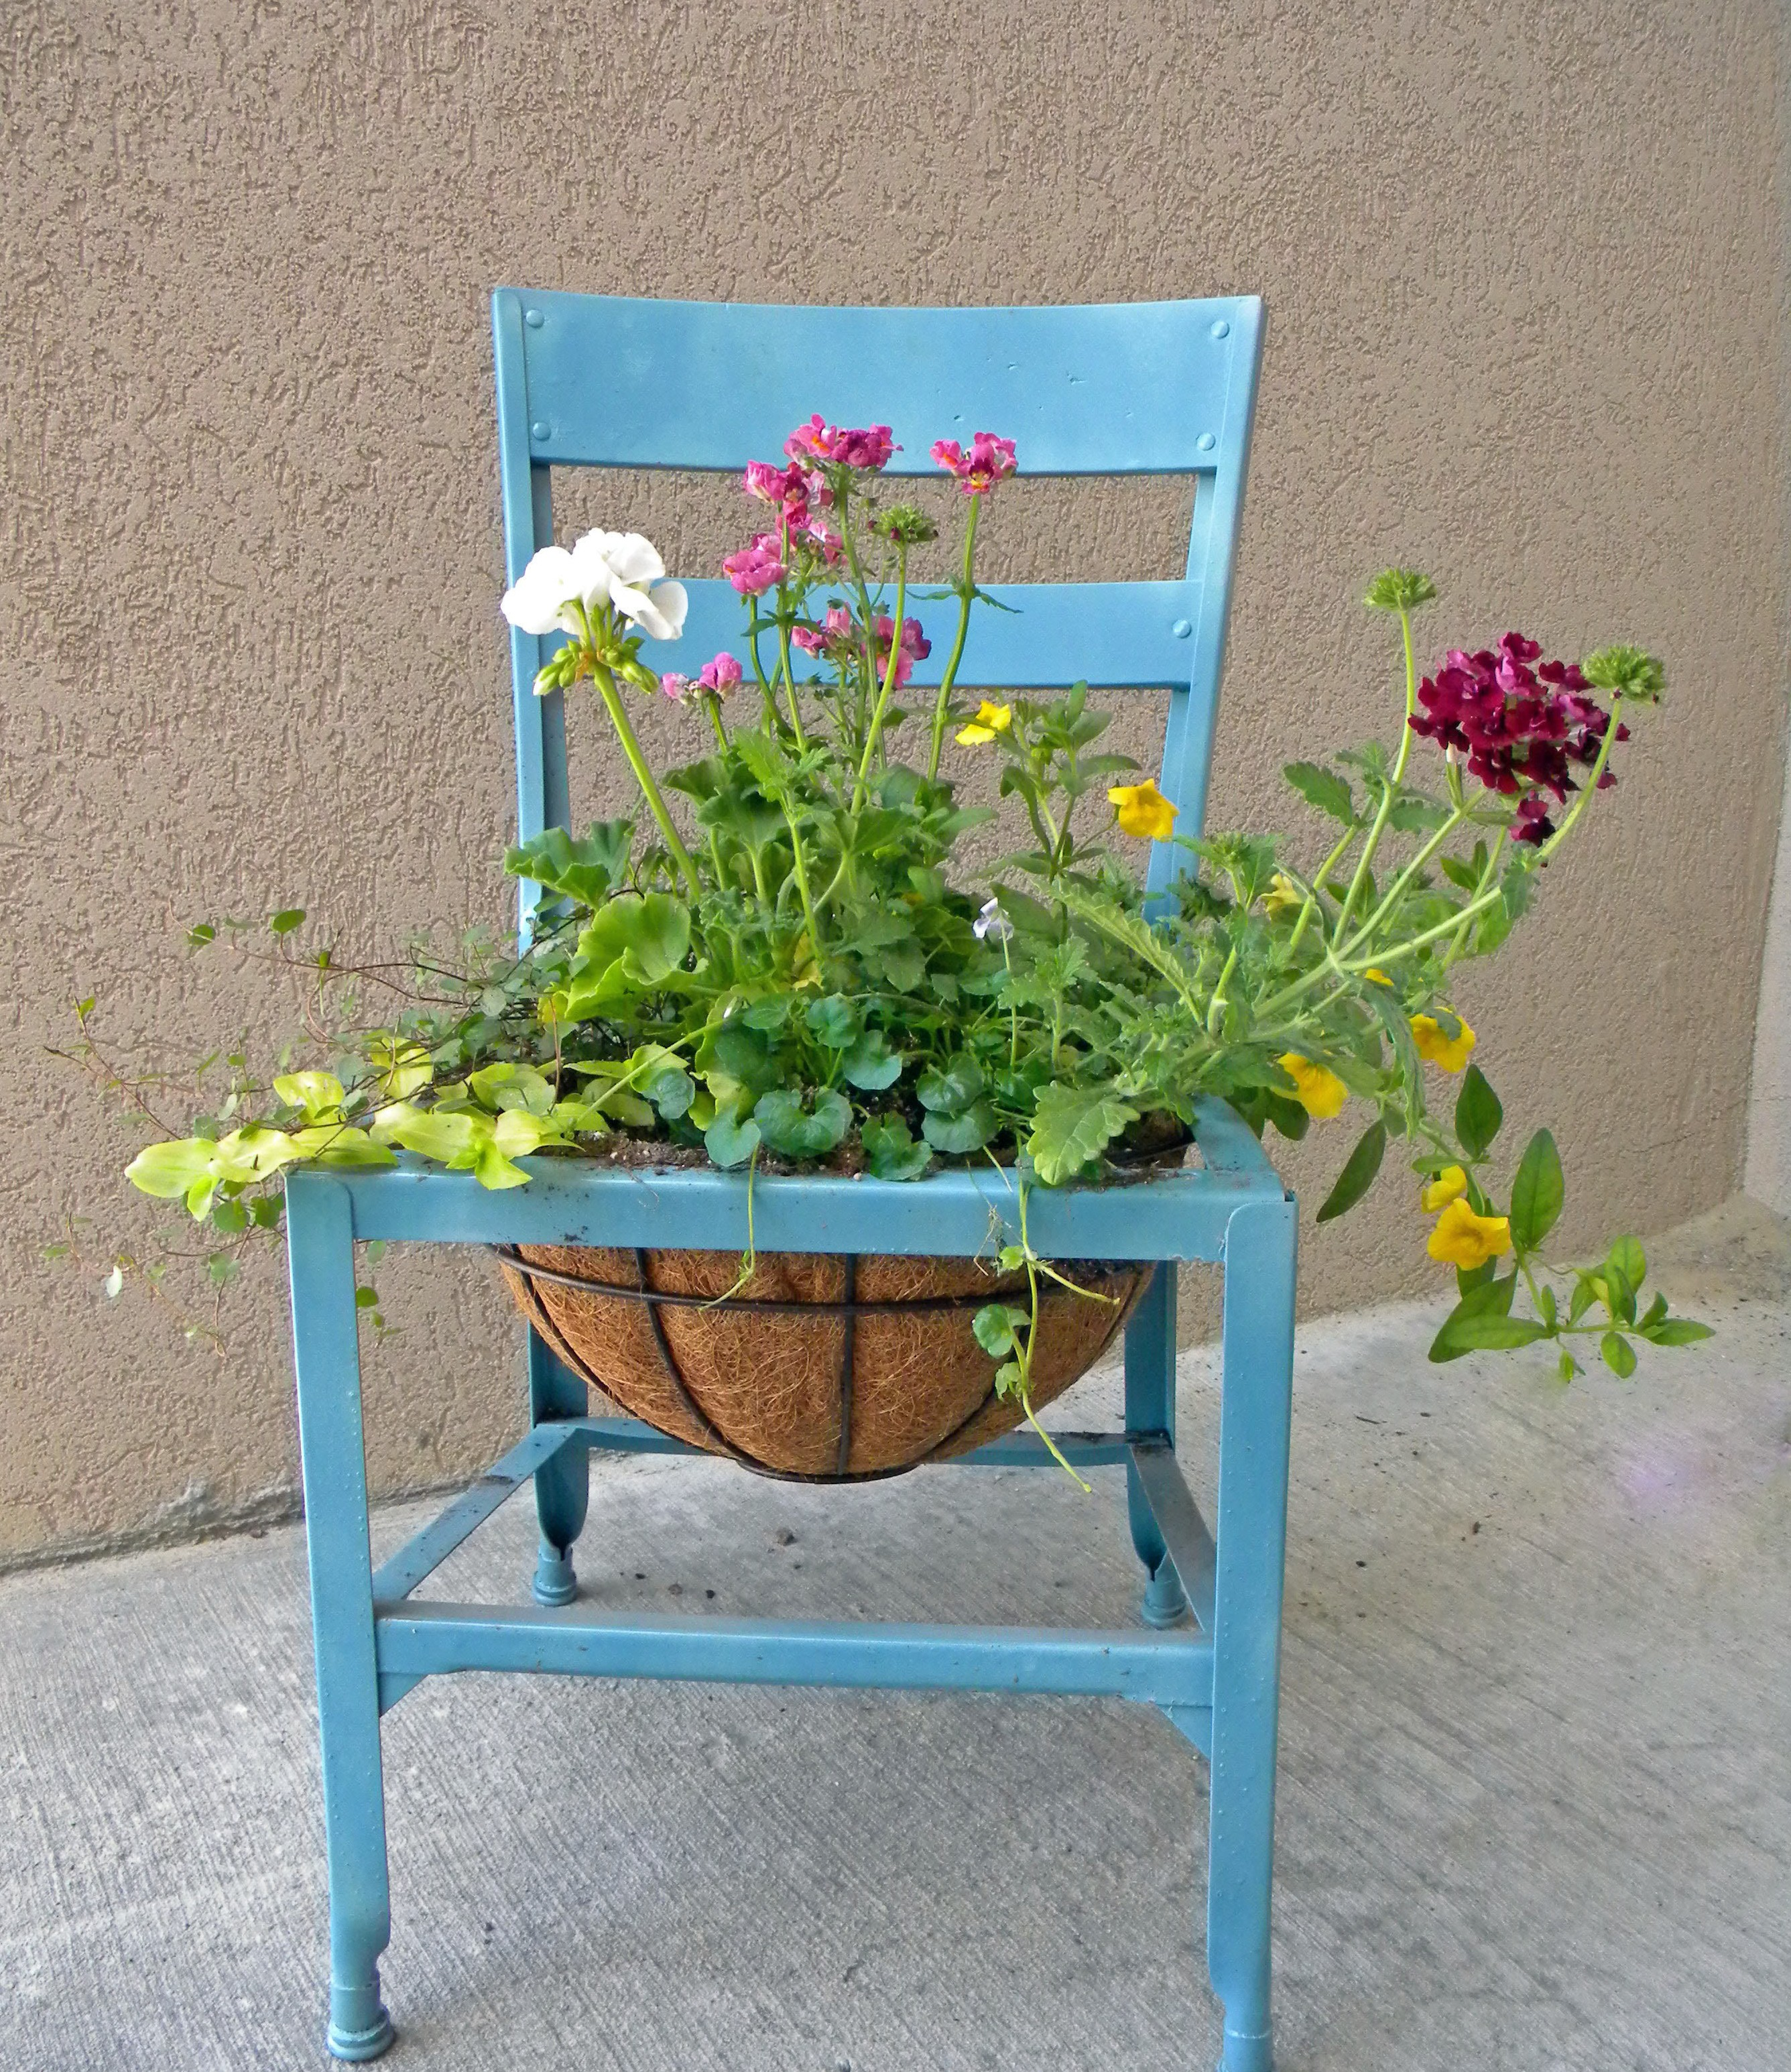 Five ways to make a beautiful container garden for spring ...